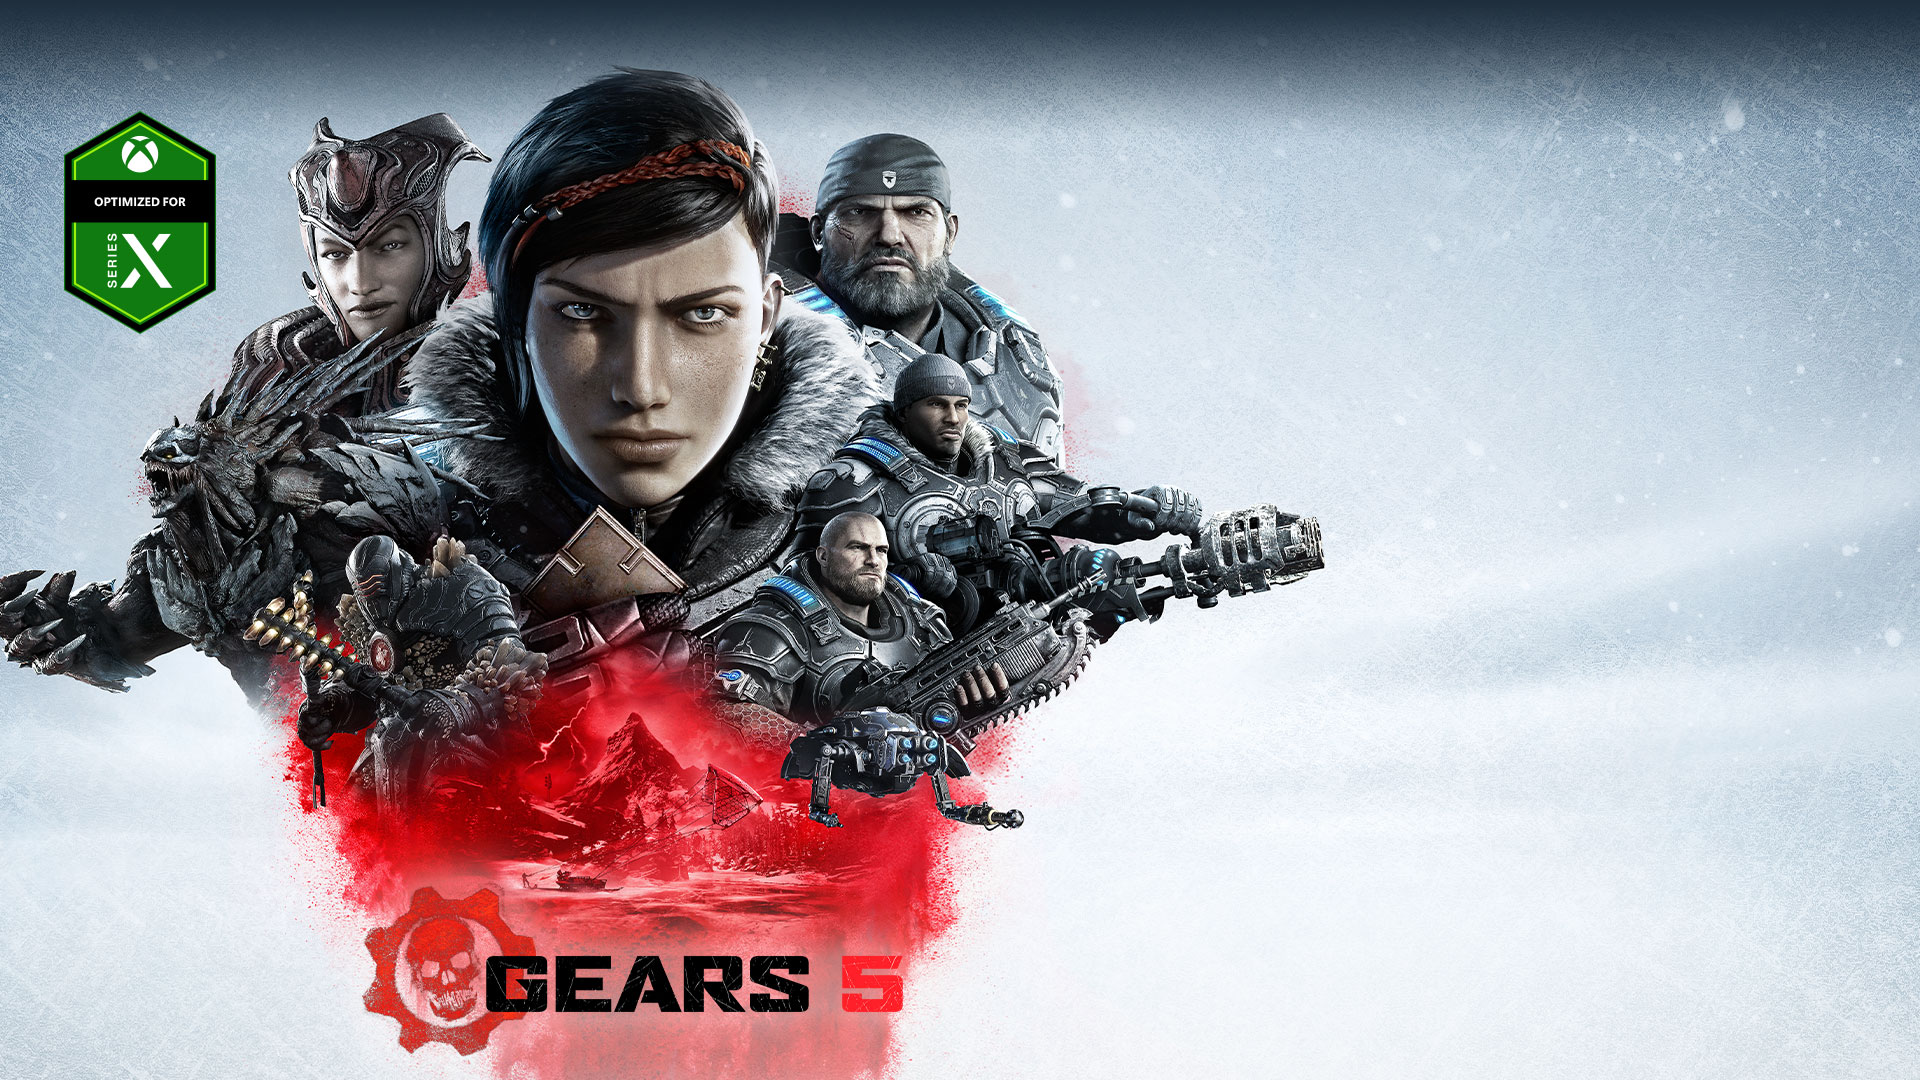 Optimized for Xbox Series X, Gears 5, Collage of Gears main characters with enemies above an image of Kait riding a skiff